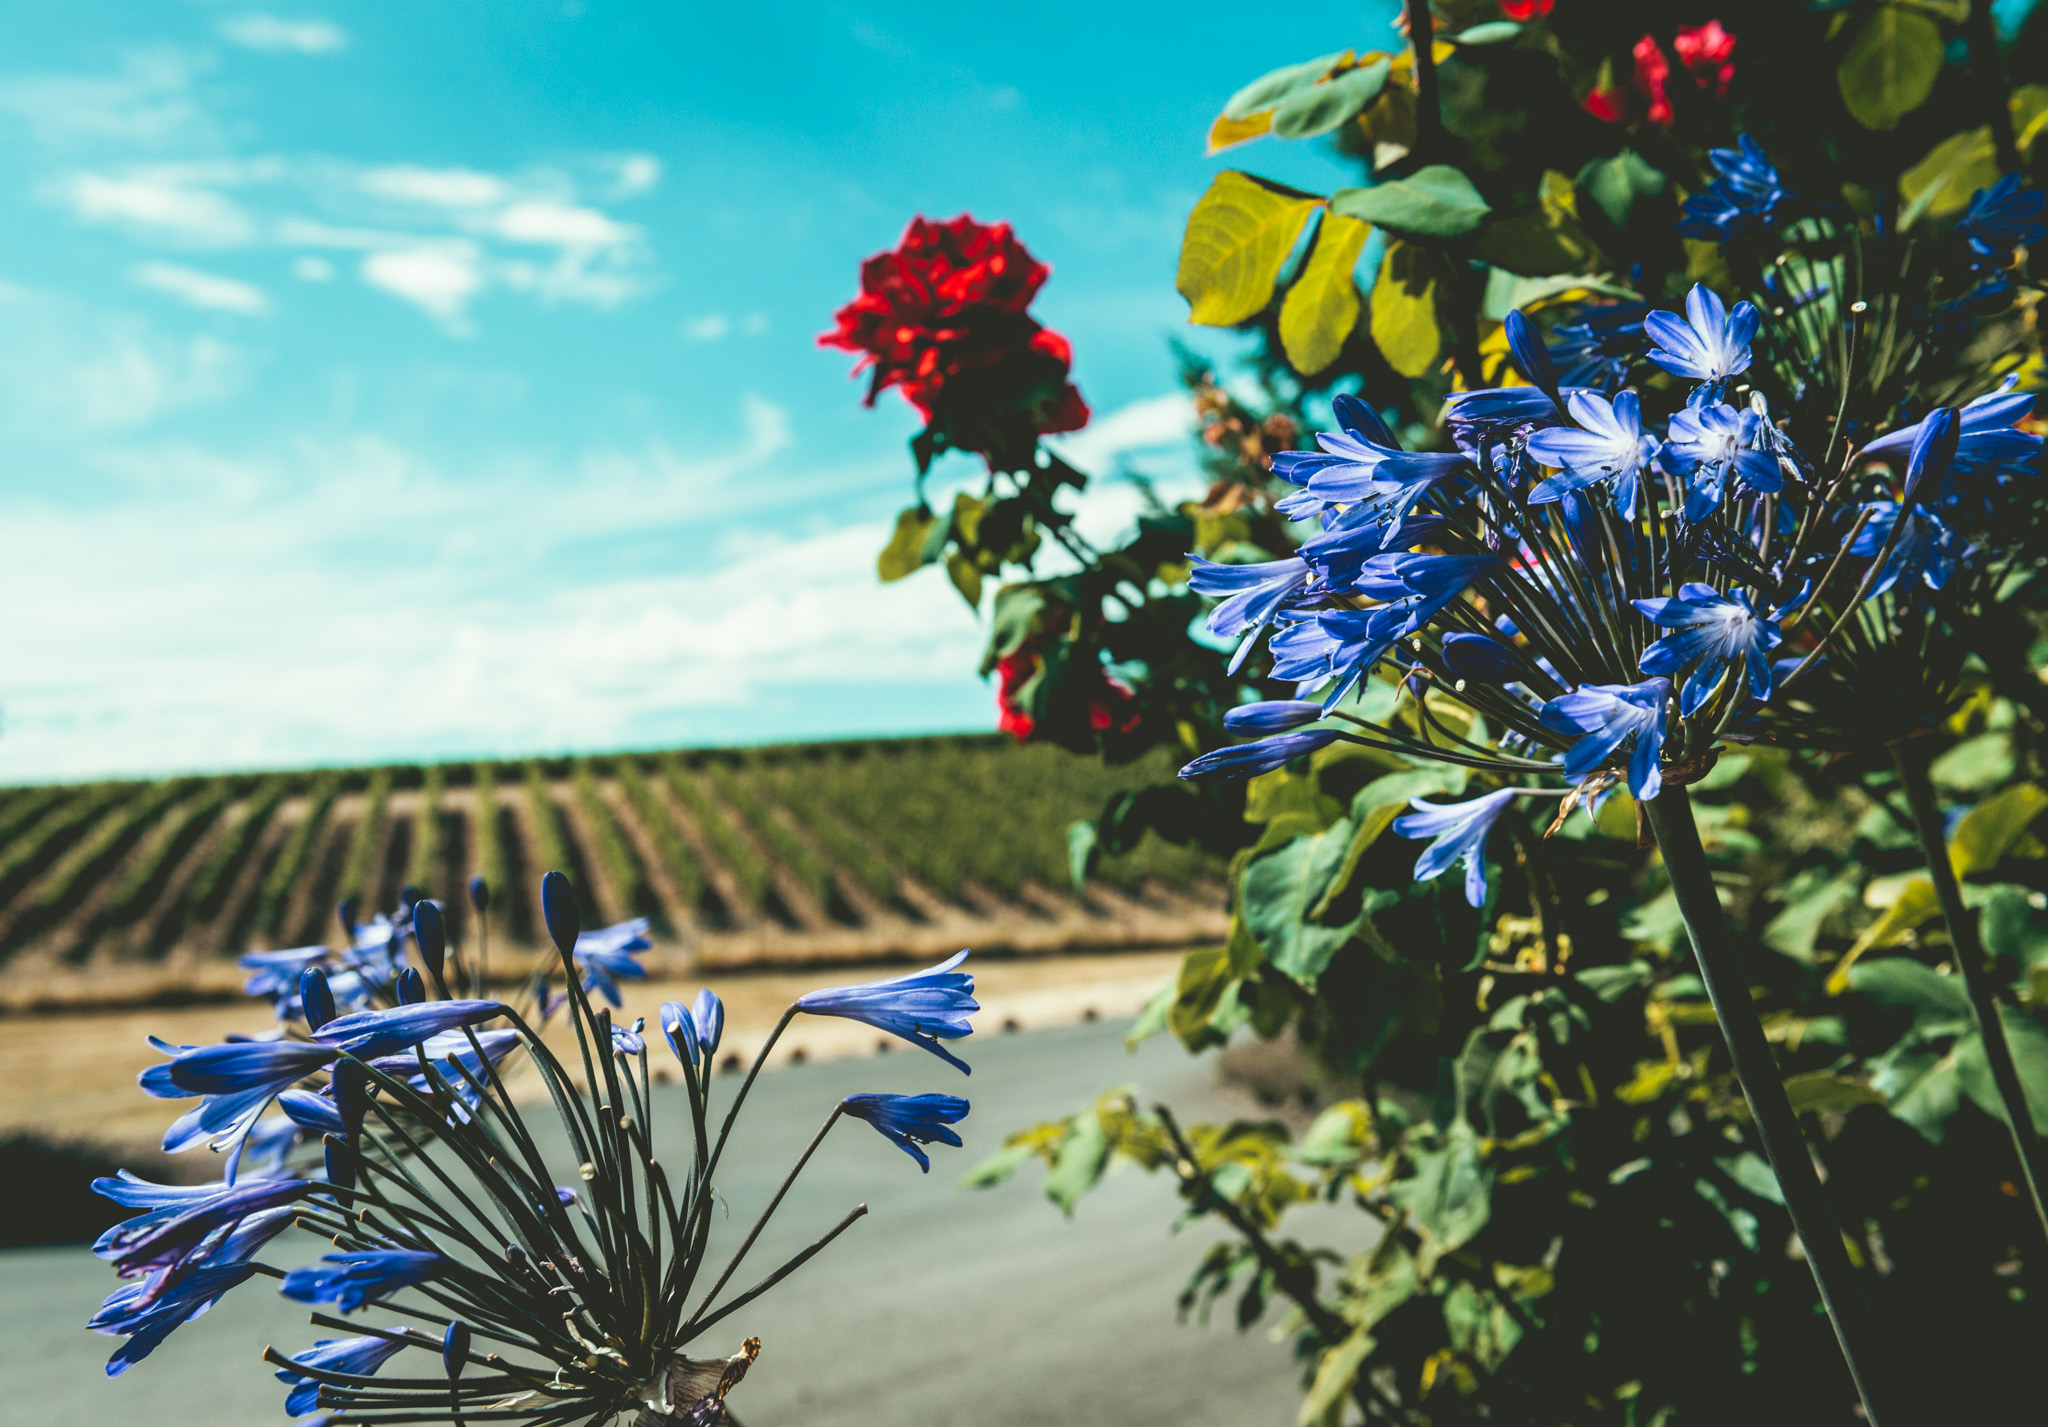 US : Oregon : Vineyards outside of Willakenzie's winery in the Yamhill-Carlton District